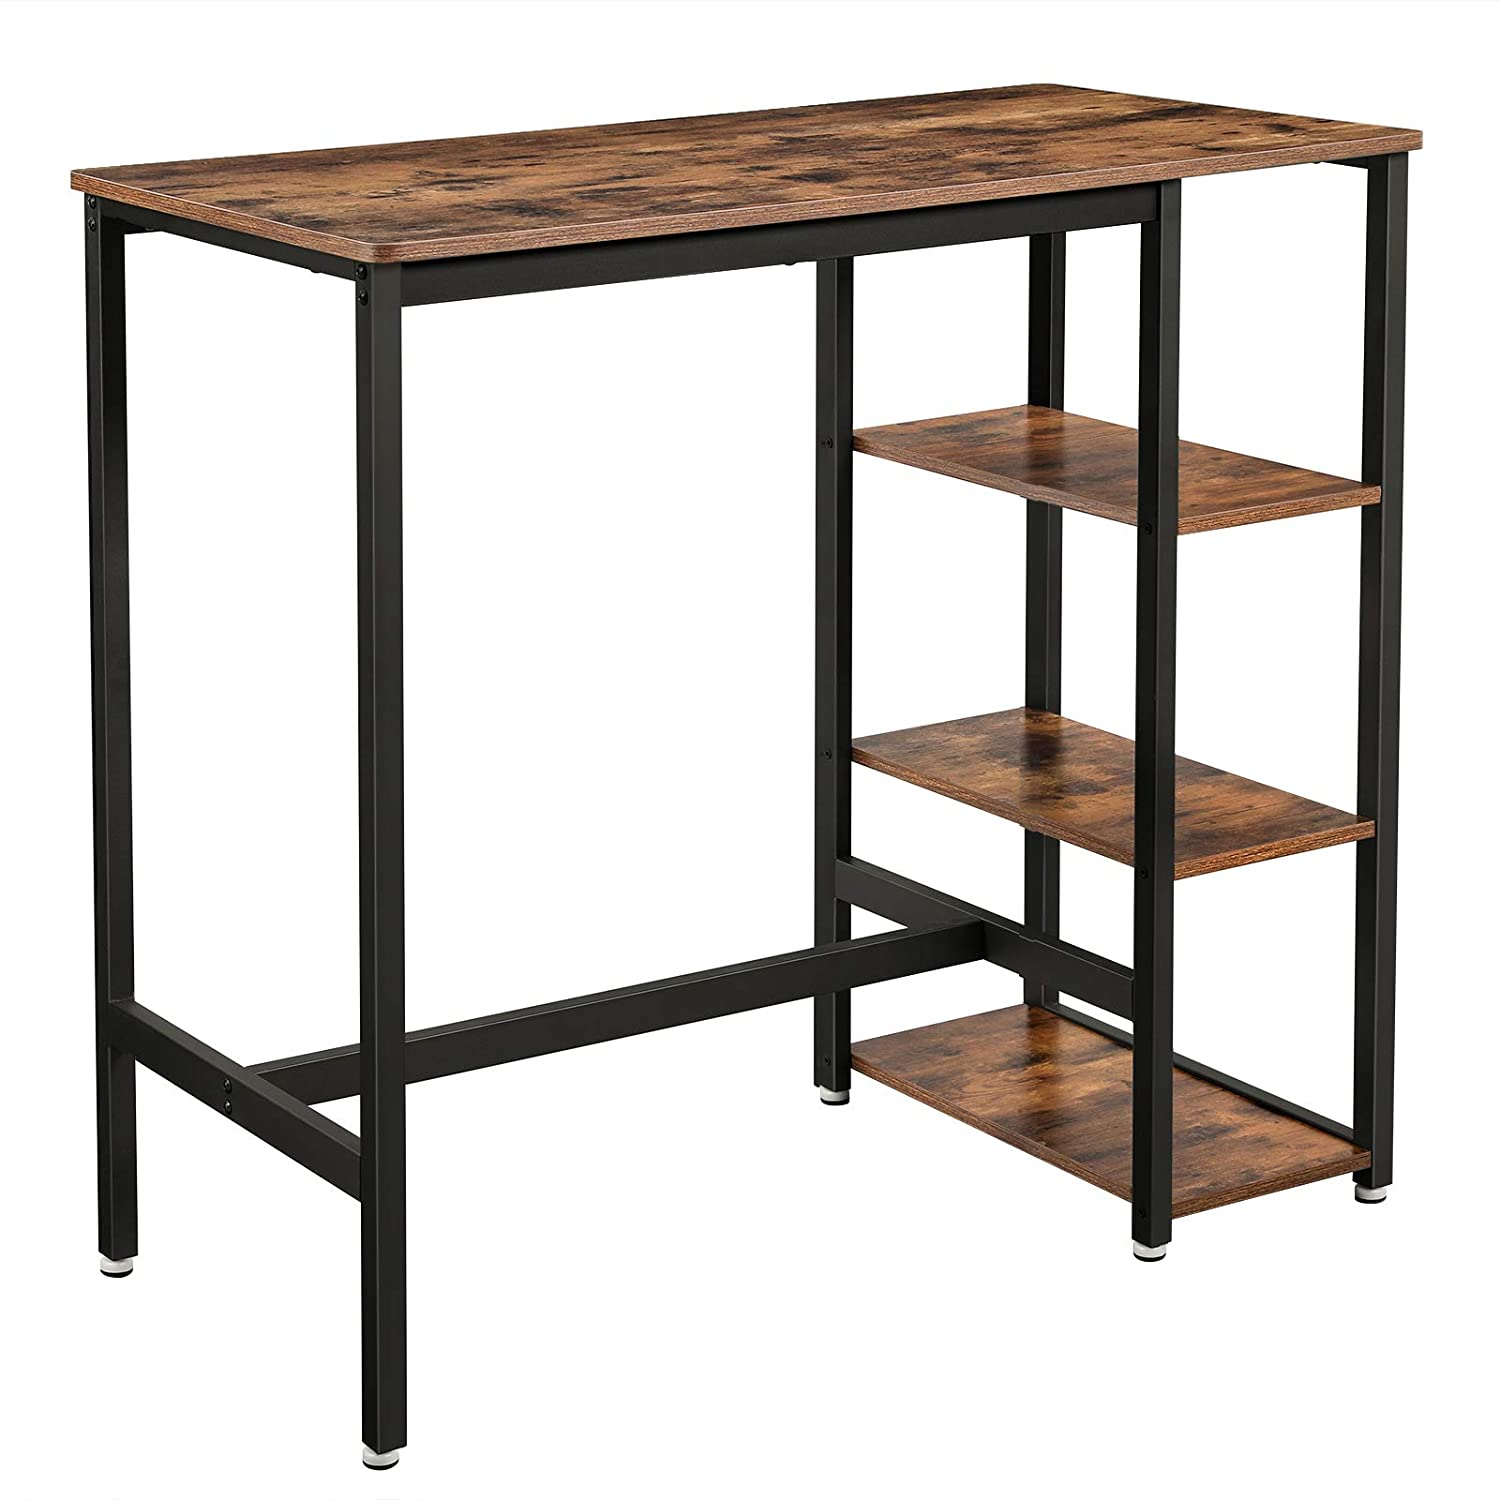 Enjoy fast, free nationwide shipping!  Family owned and operated, HawkinsWoodshop.com is your one stop shop for affordable furniture.  Shop HawkinsWoodshop.com for solid wood & metal modern, traditional, contemporary, industrial, custom, rustic, and farmhouse furniture including our Ryan High Dining Bar Table.